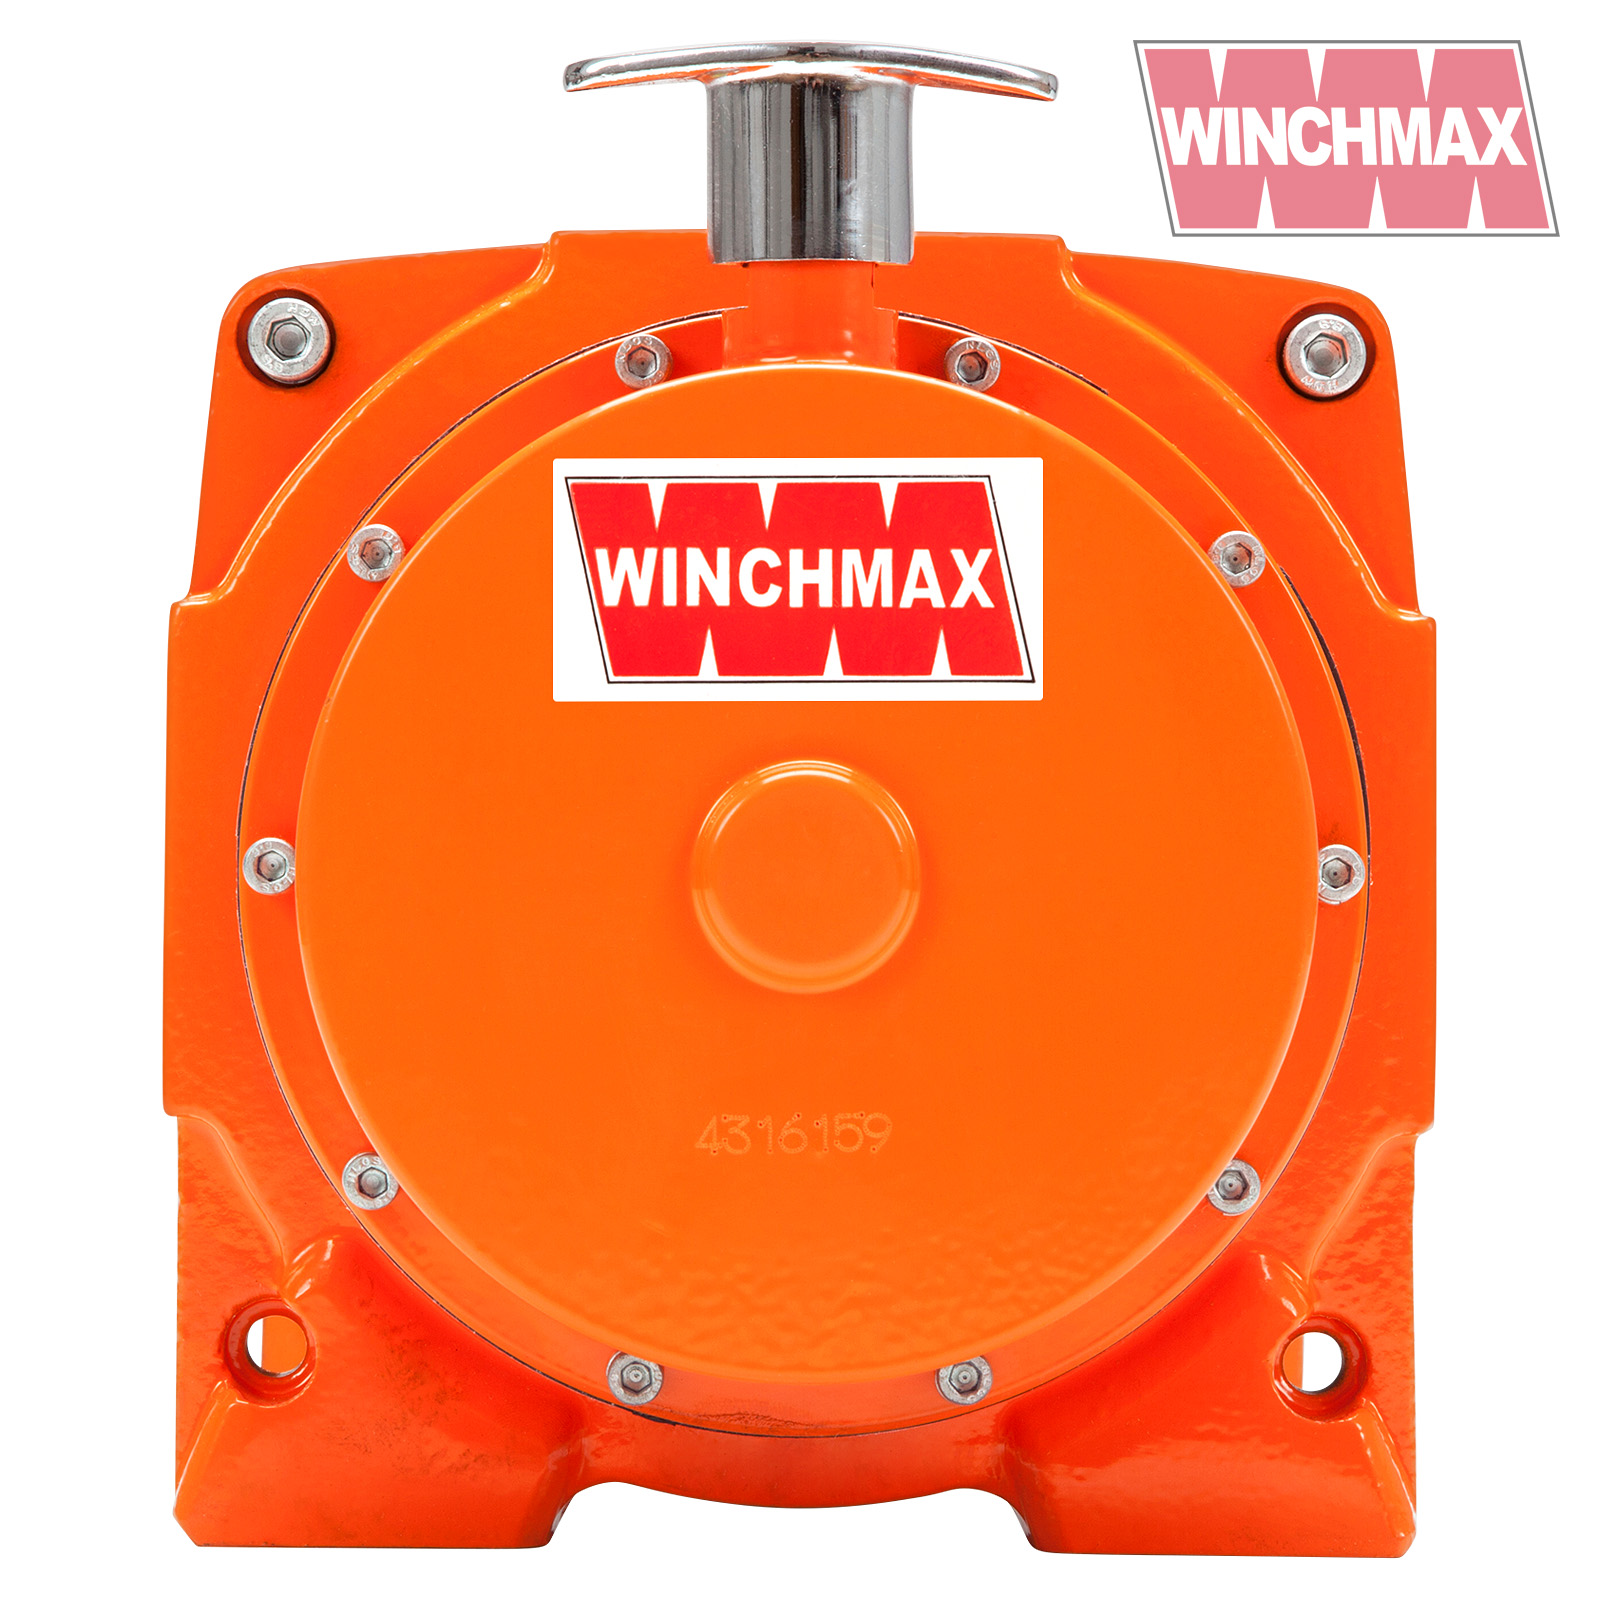 Wm20000hyd nc no rope winchmax 569